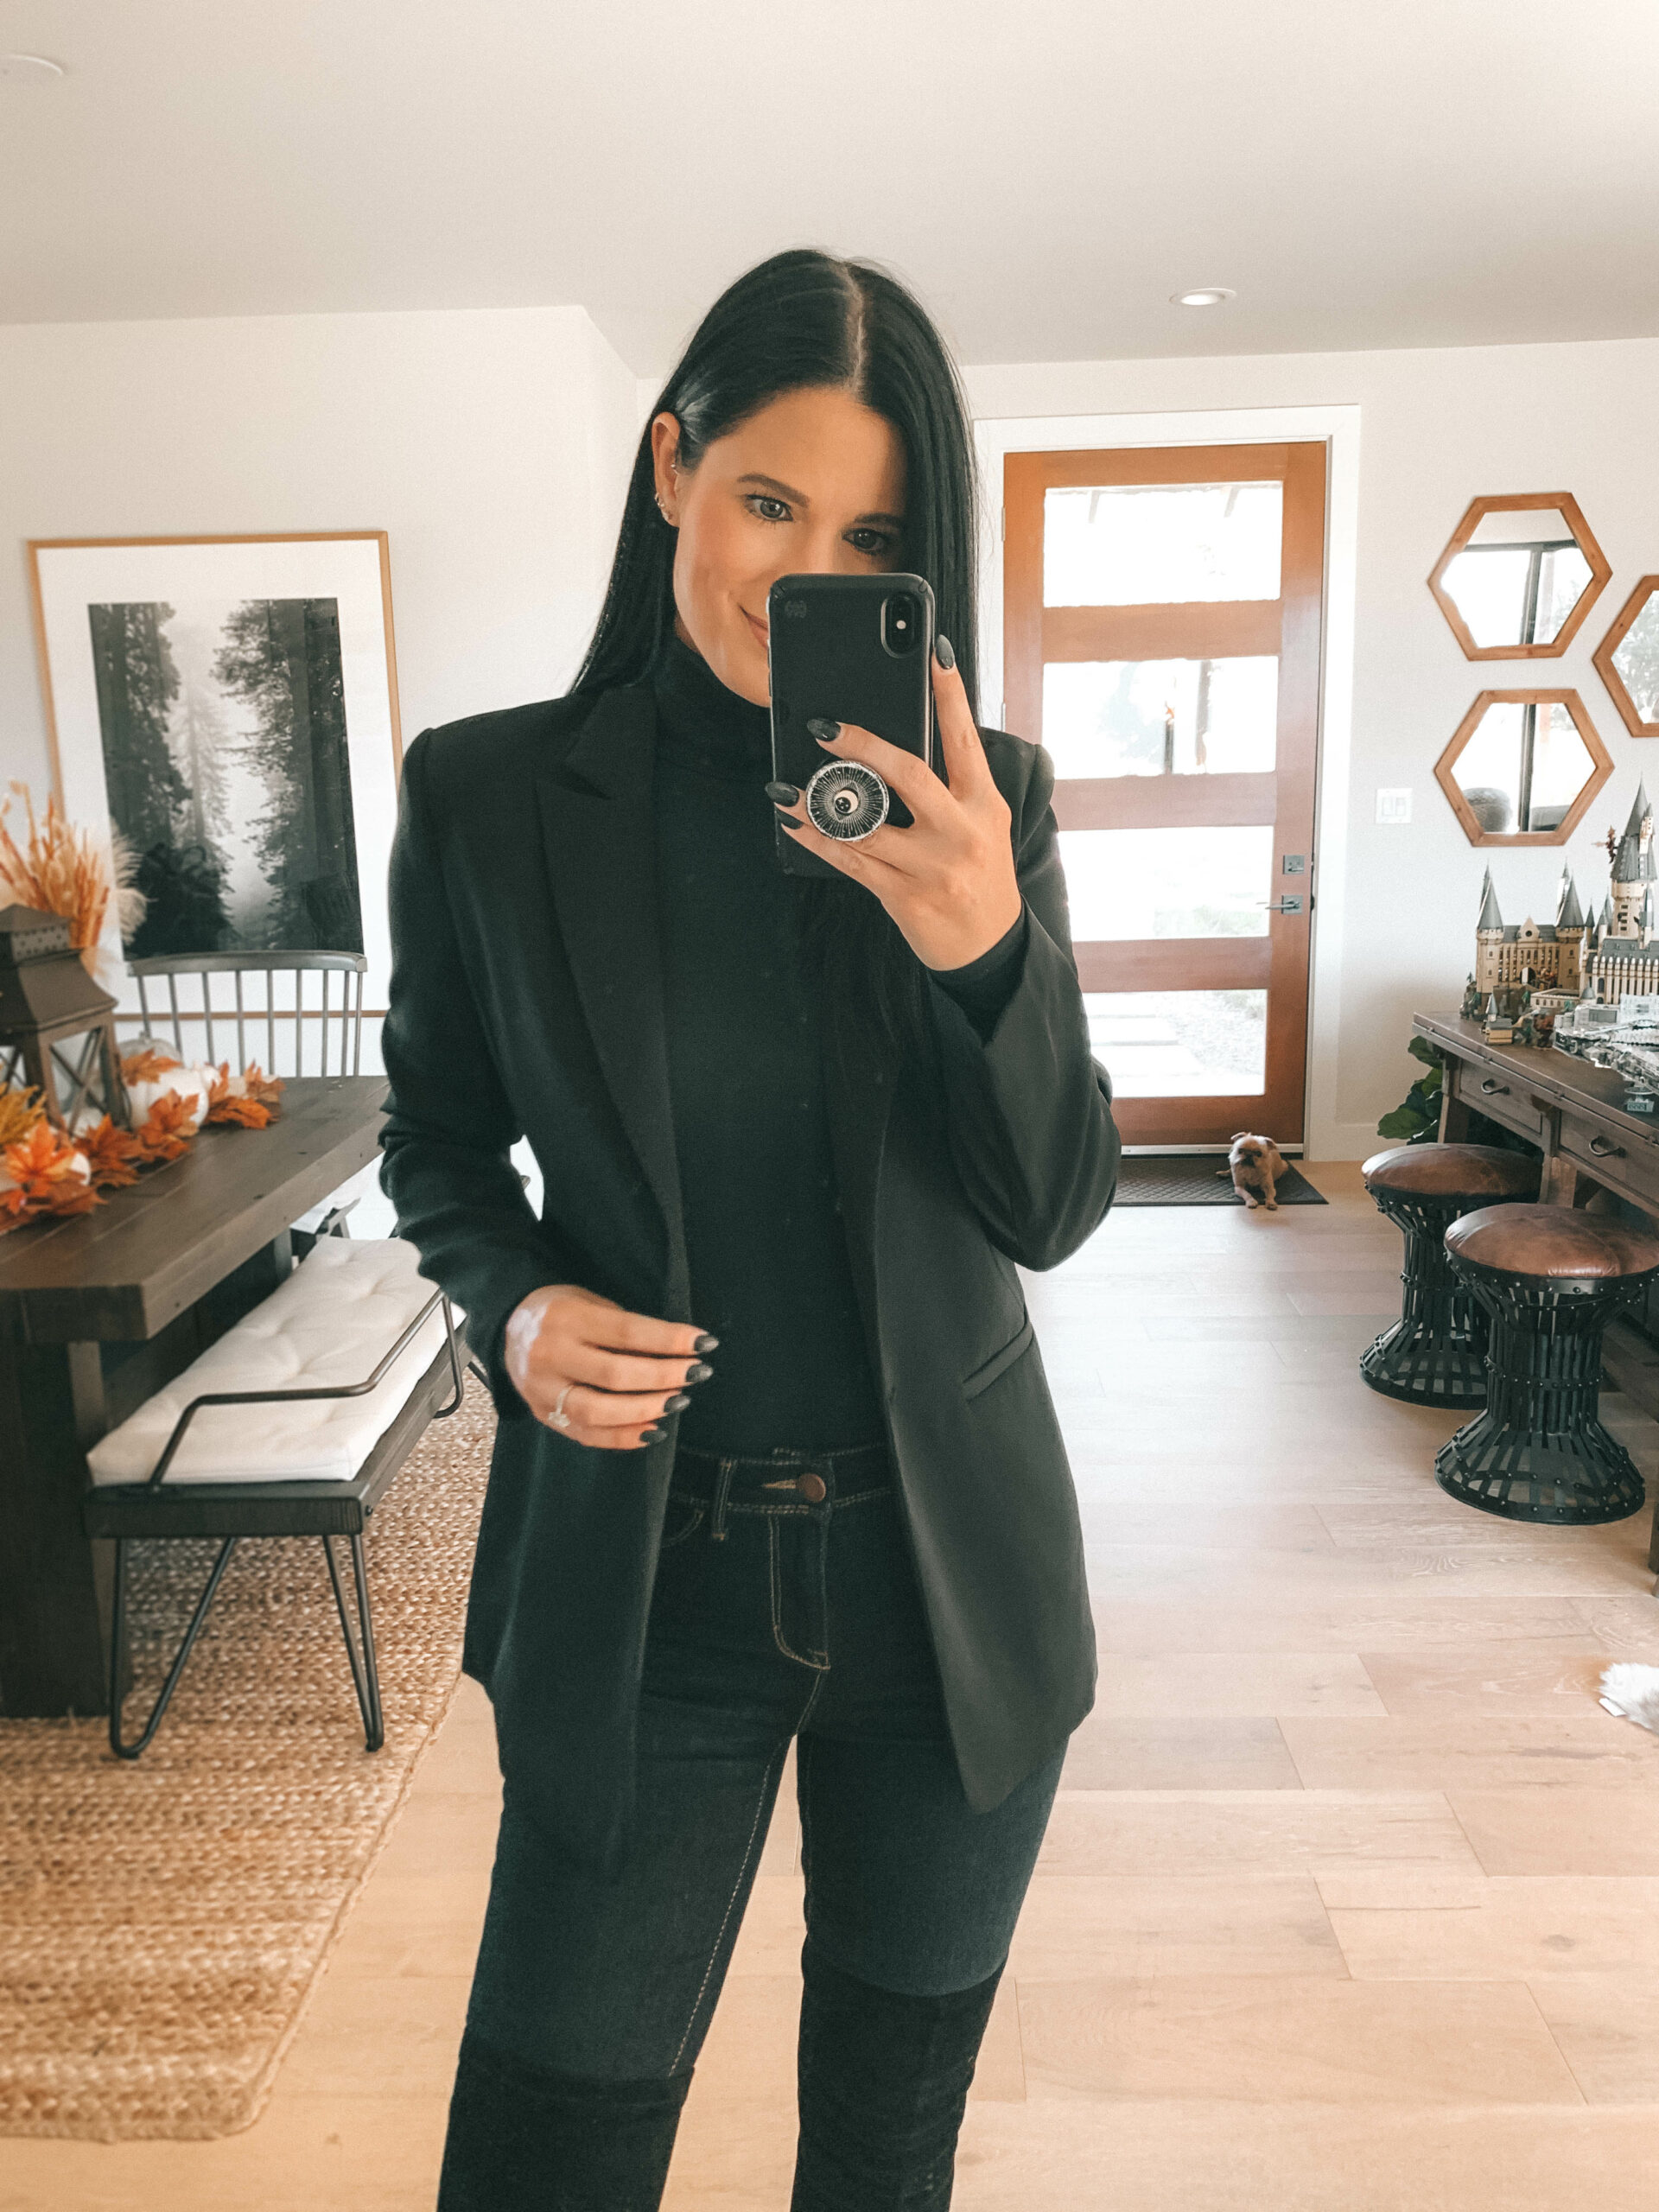 Spanx Bodysuit by popular Austin fashion blog, Dressed to Kill: image of a woman wearing a black long sleeve Spanx bodysuit with a black blazer, jeans, and black over the knee boots.